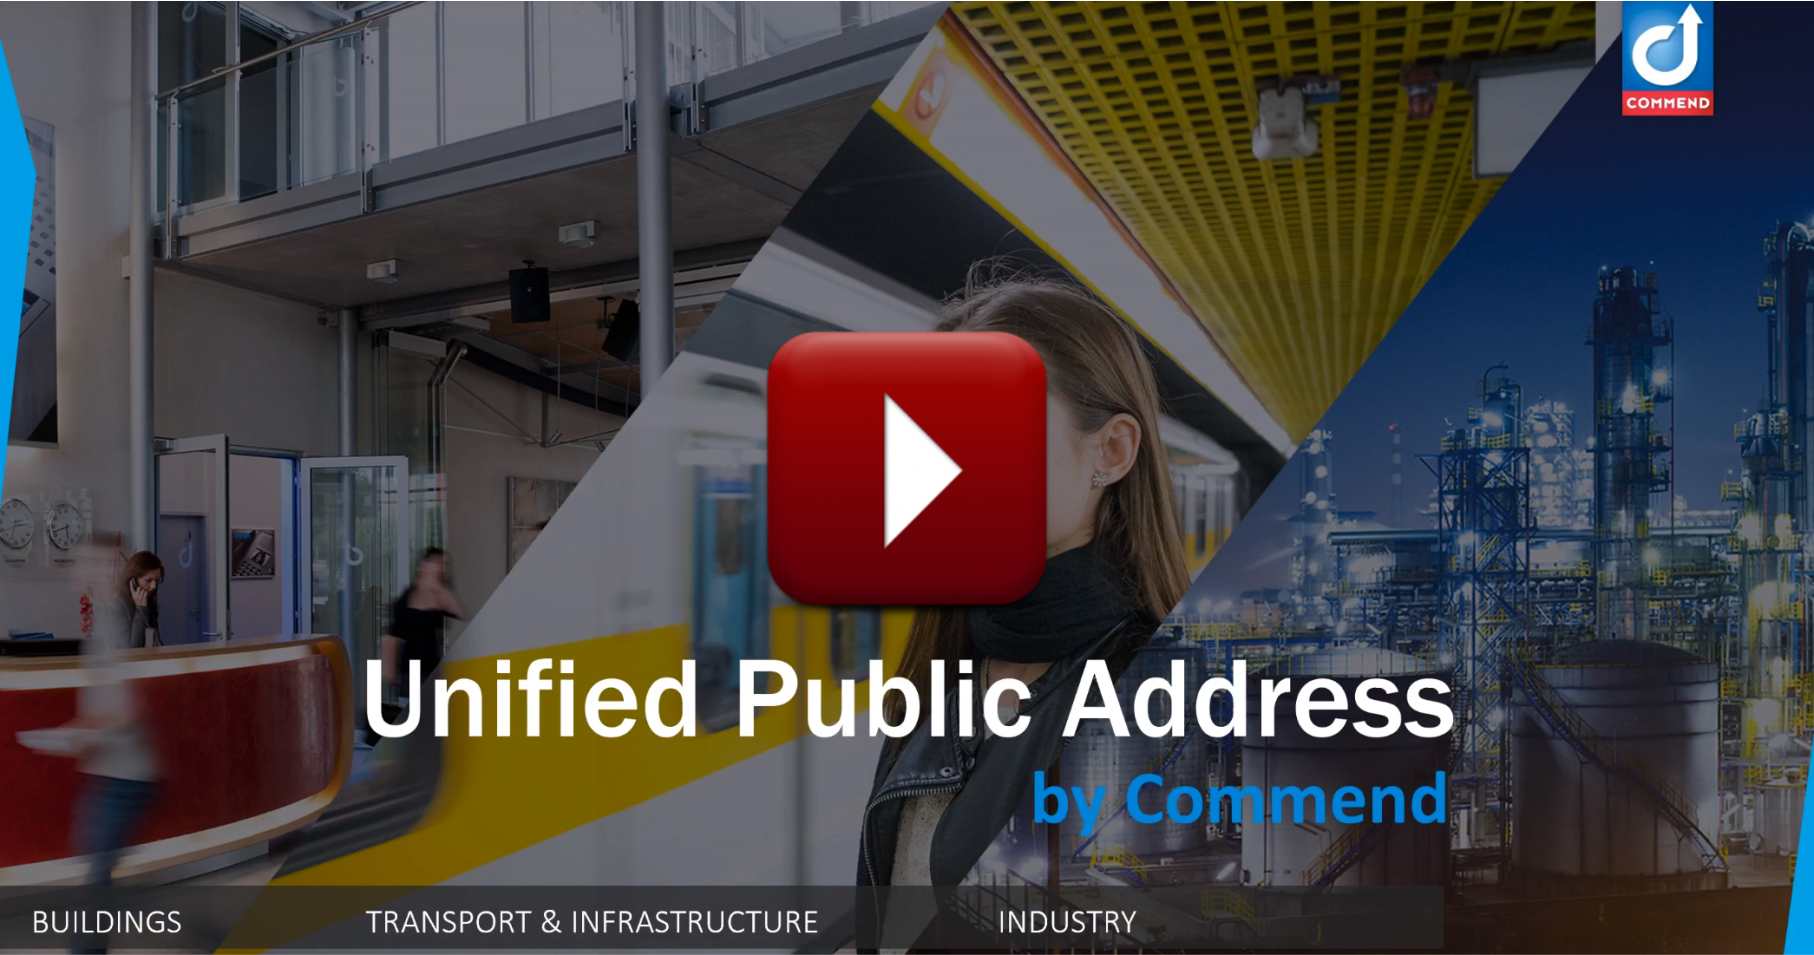 Commend unified public address video thumbnail - play button